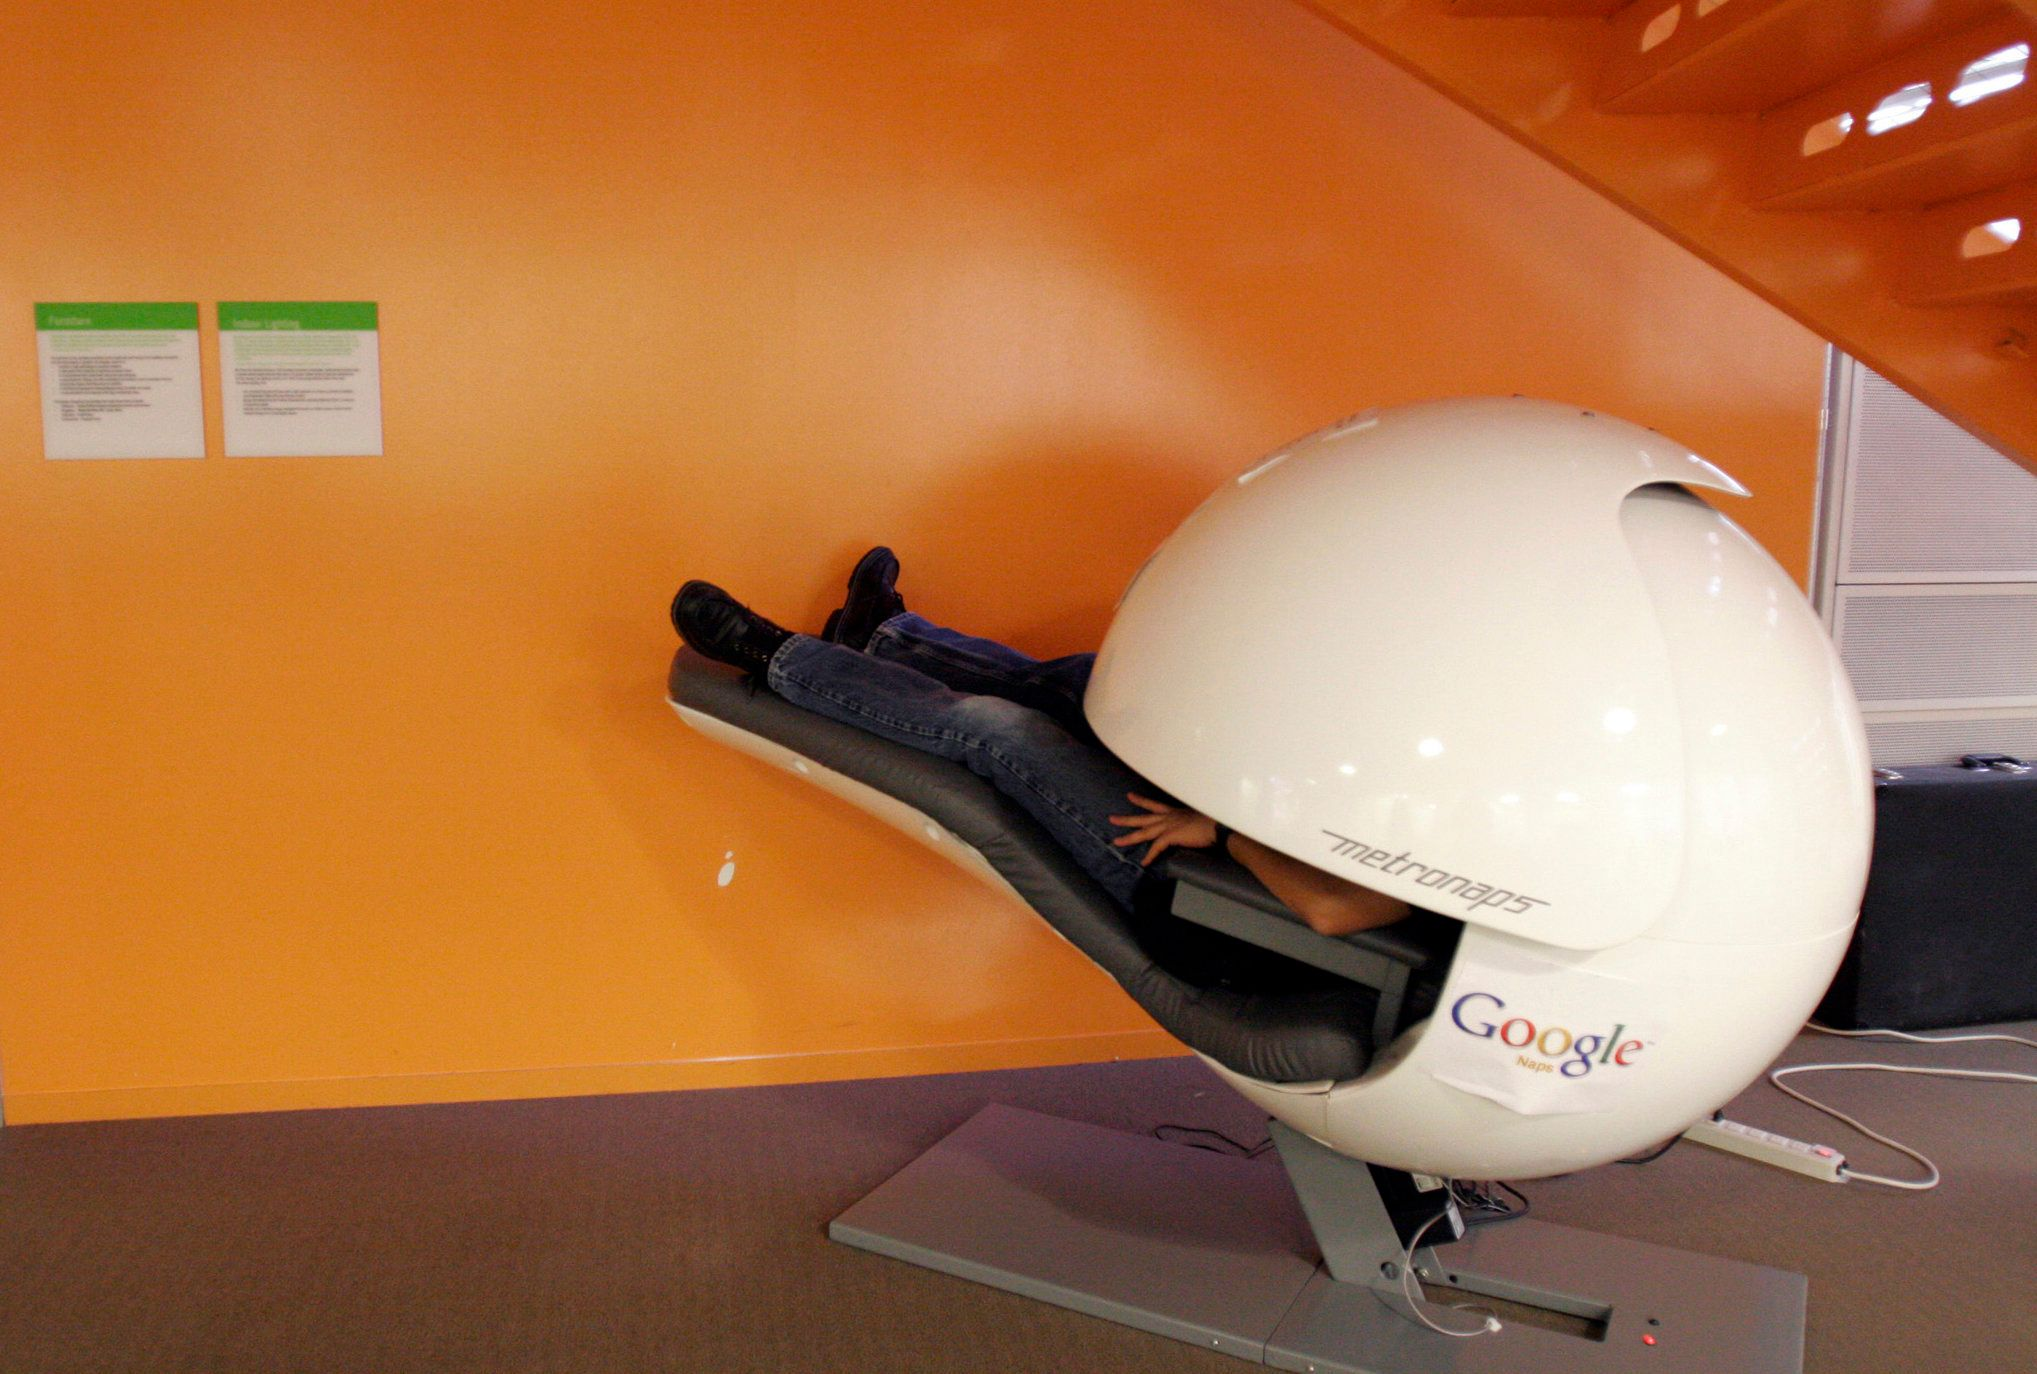 An employee takes a nap in a nap pod which blocks out light and sound at the Google headquarters in Mountain View, California